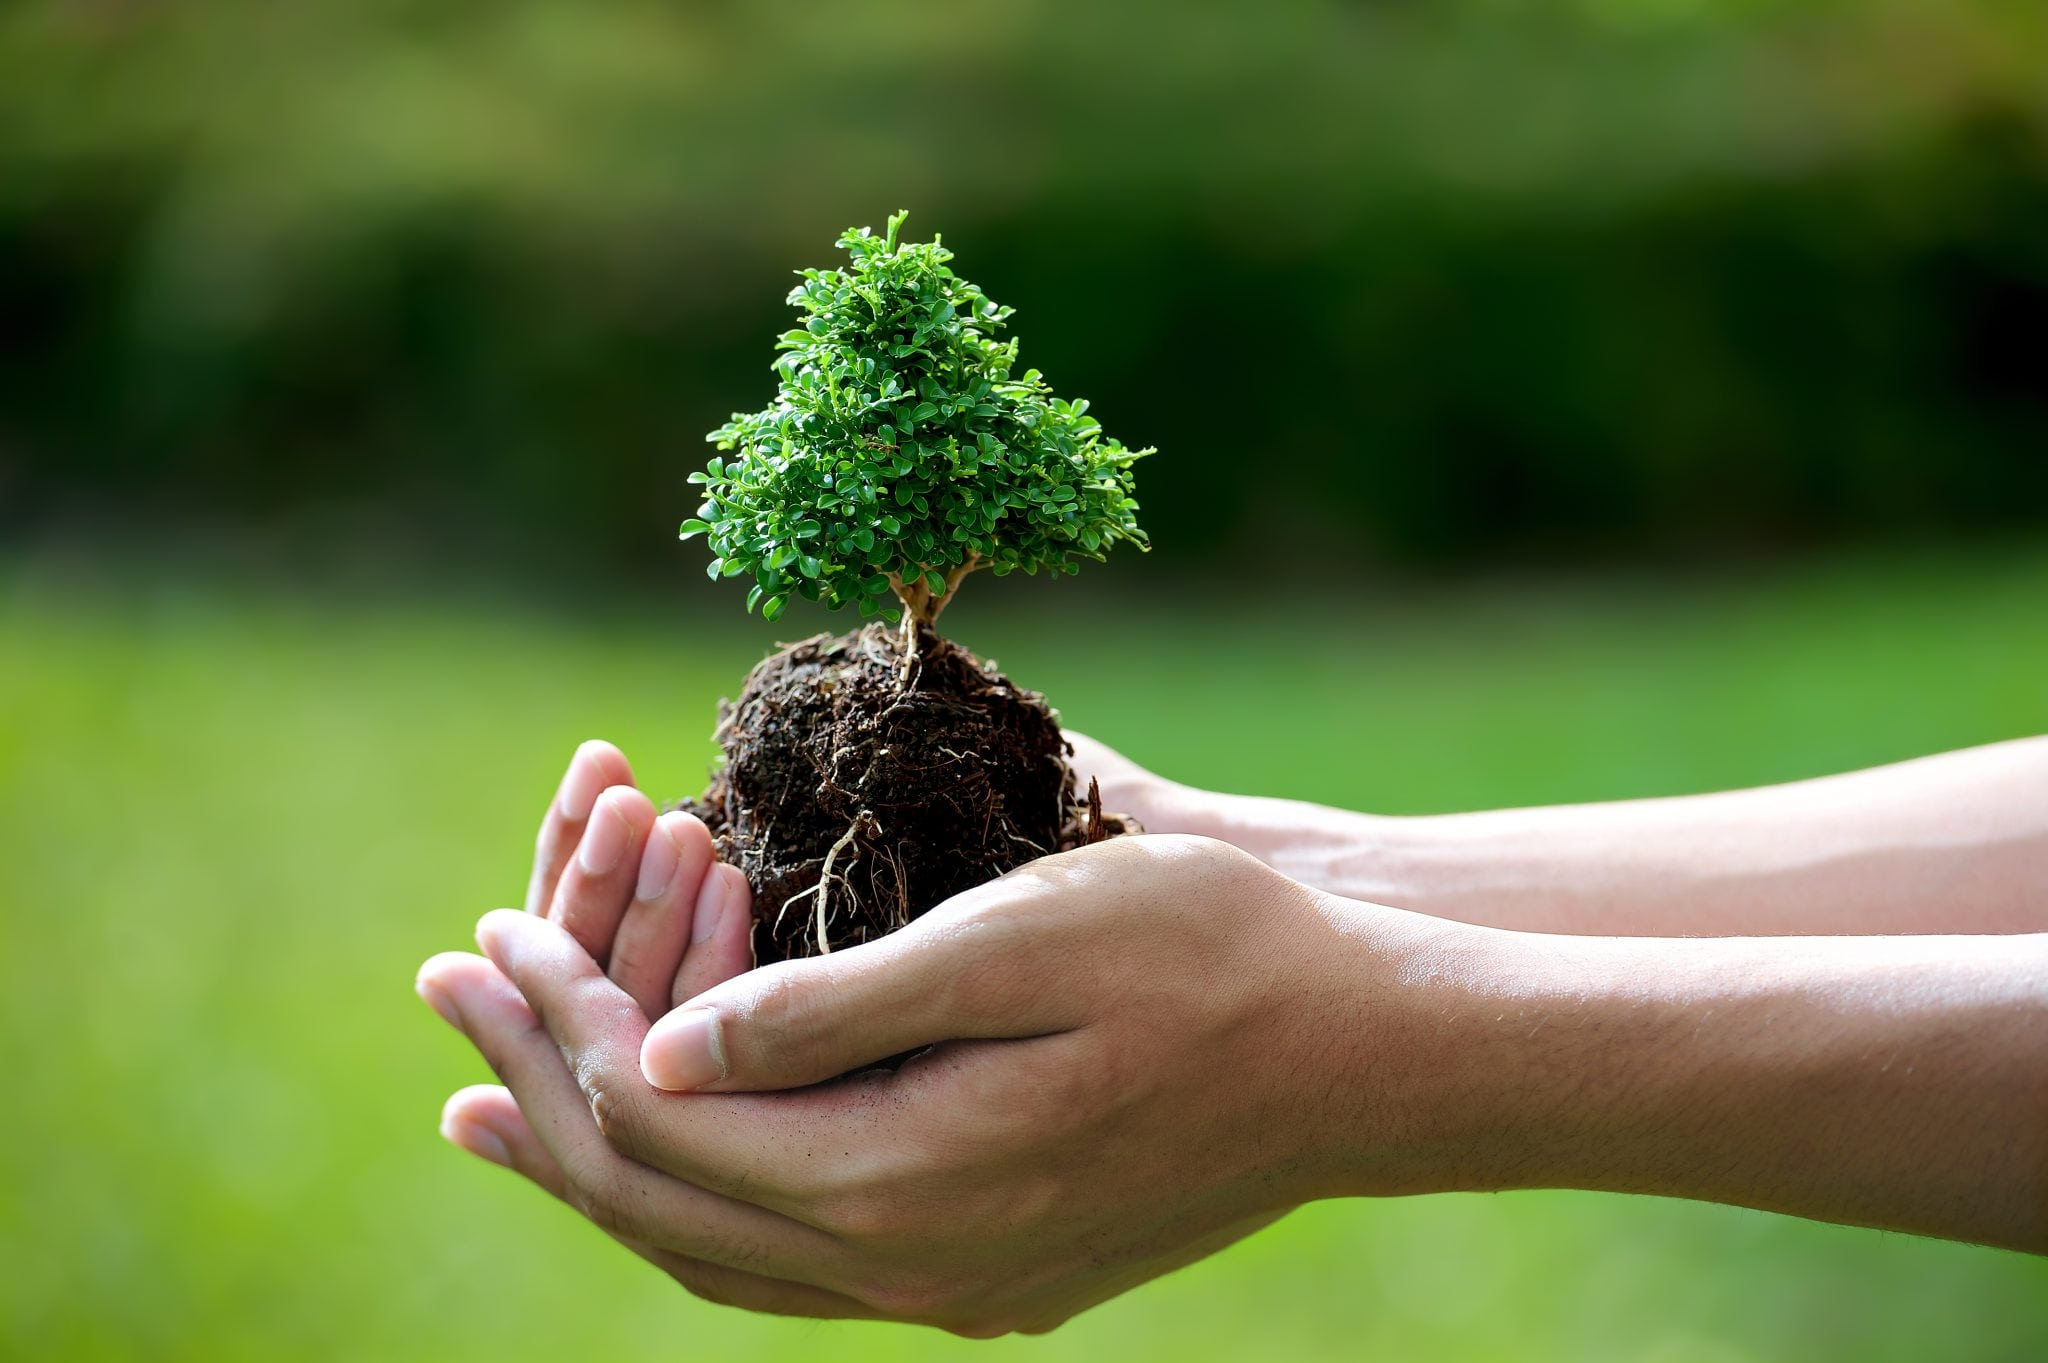 How To Care Your Bonsai To Make It Live For Hundreds Of Years Bonsai Tree Gardener